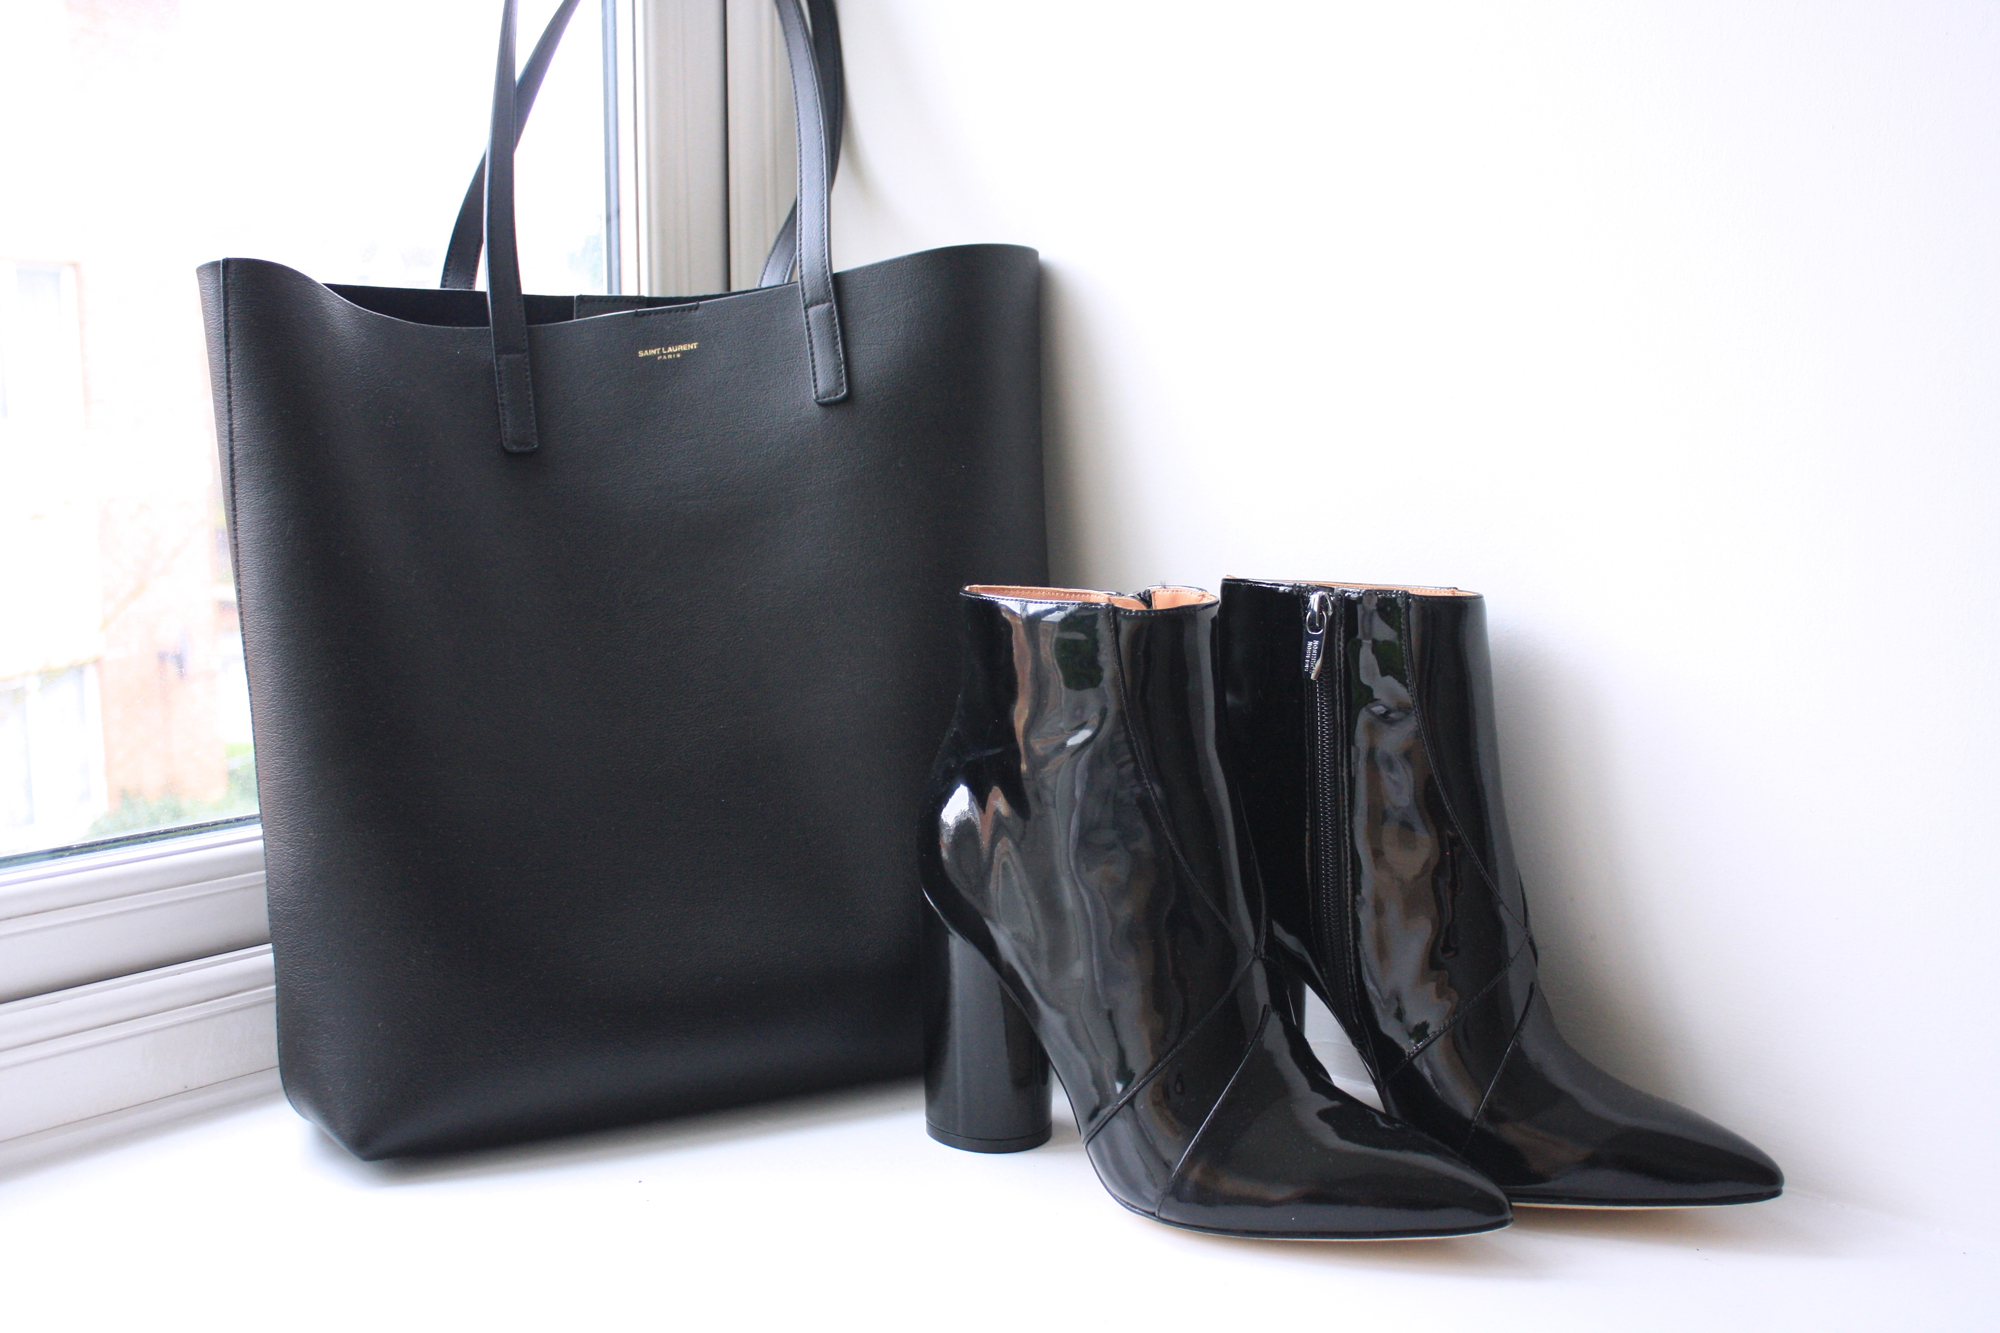 saint laurent shopper bag sigerson morrison patent leather boots